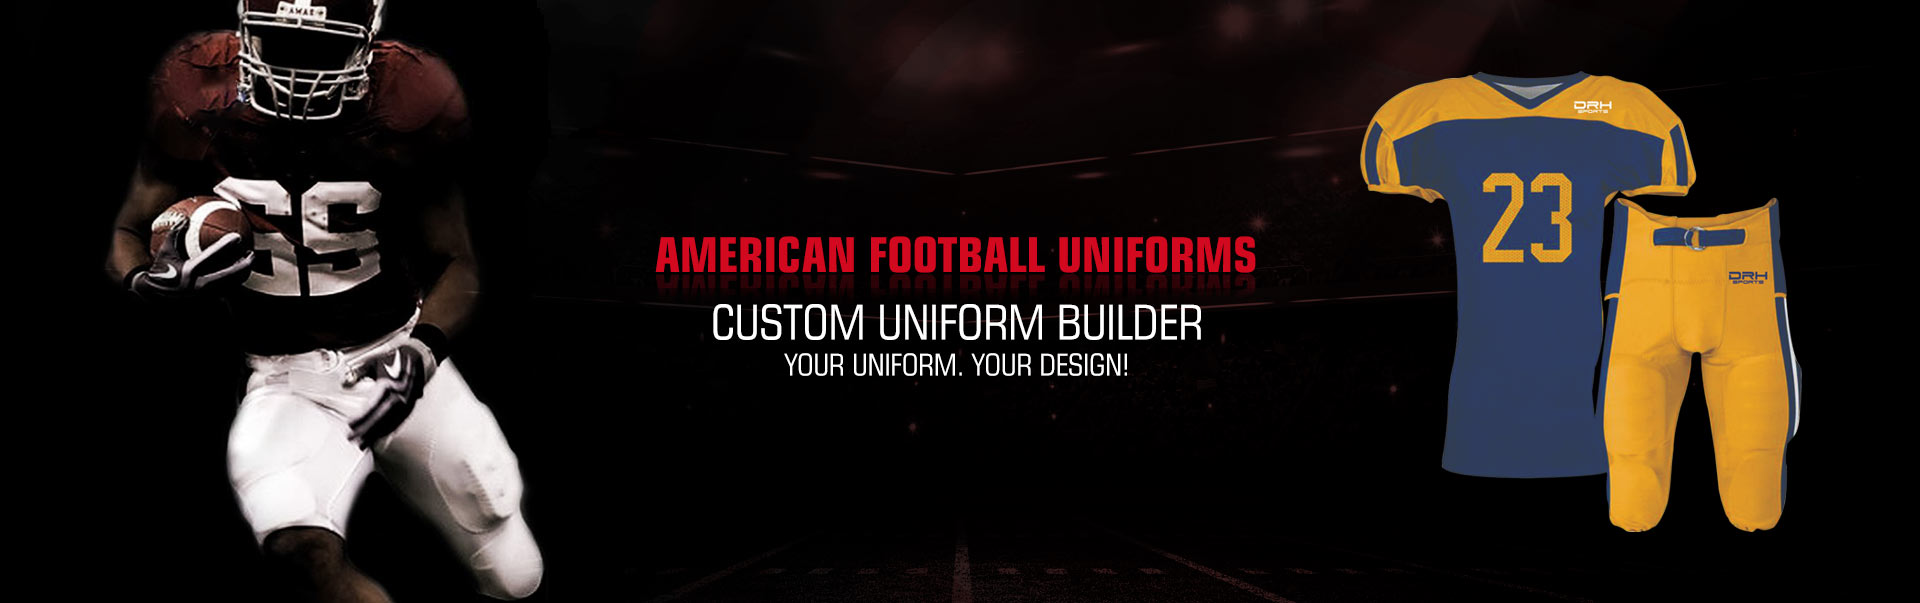 American Football Uniform Wholesaler, Suppliers in Corona